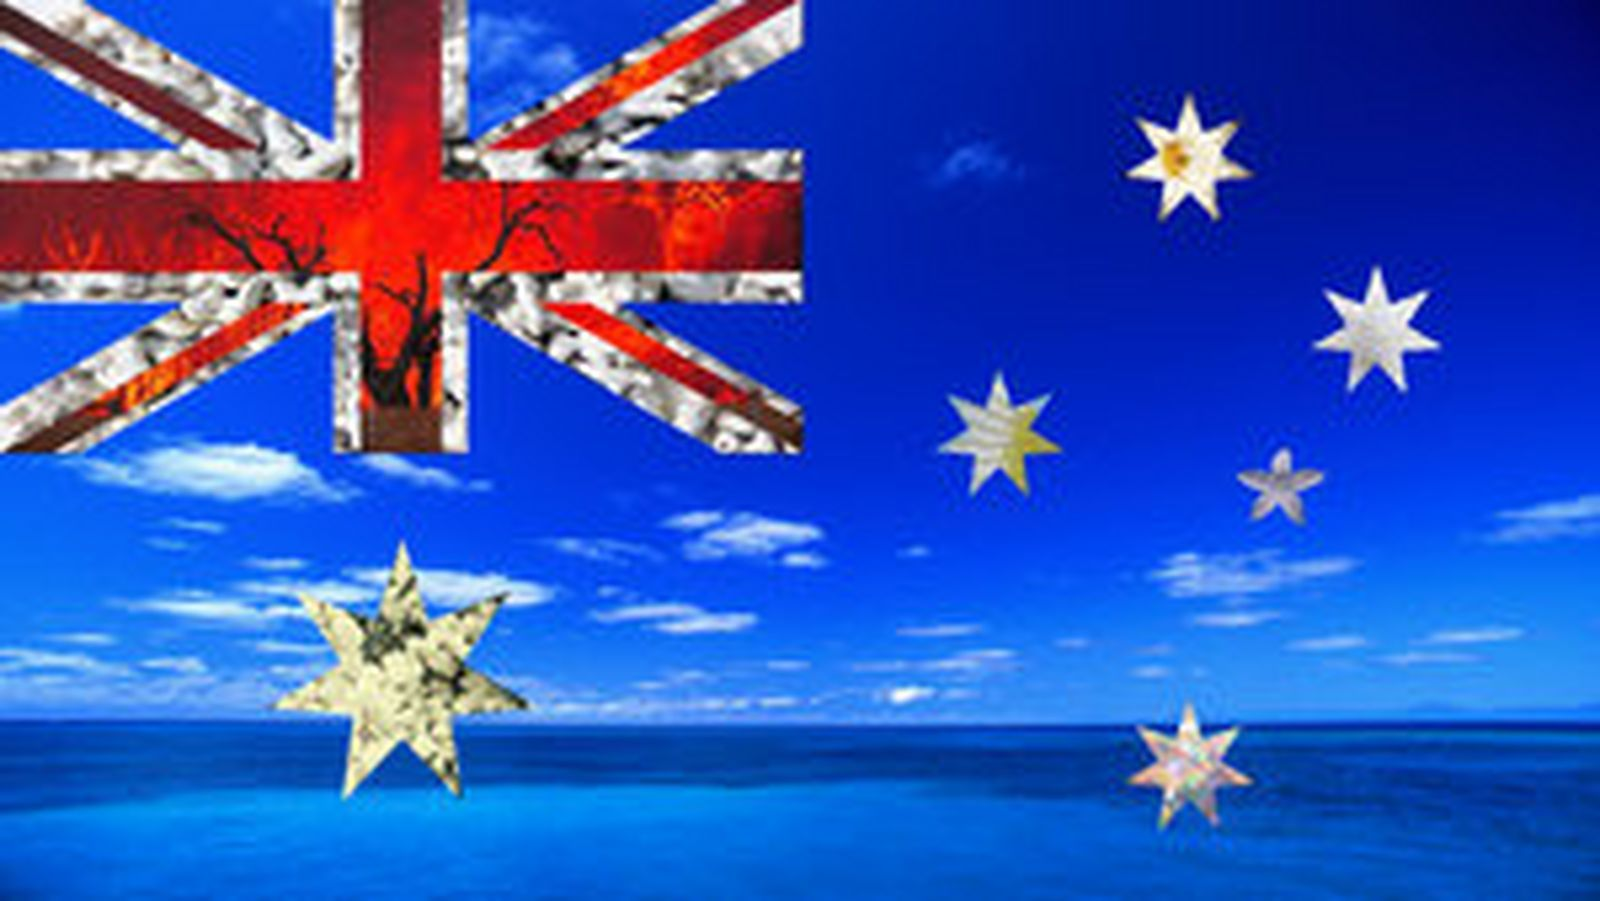 australian flag Wallpaper and Background Image 1600x901 ID 1600x901